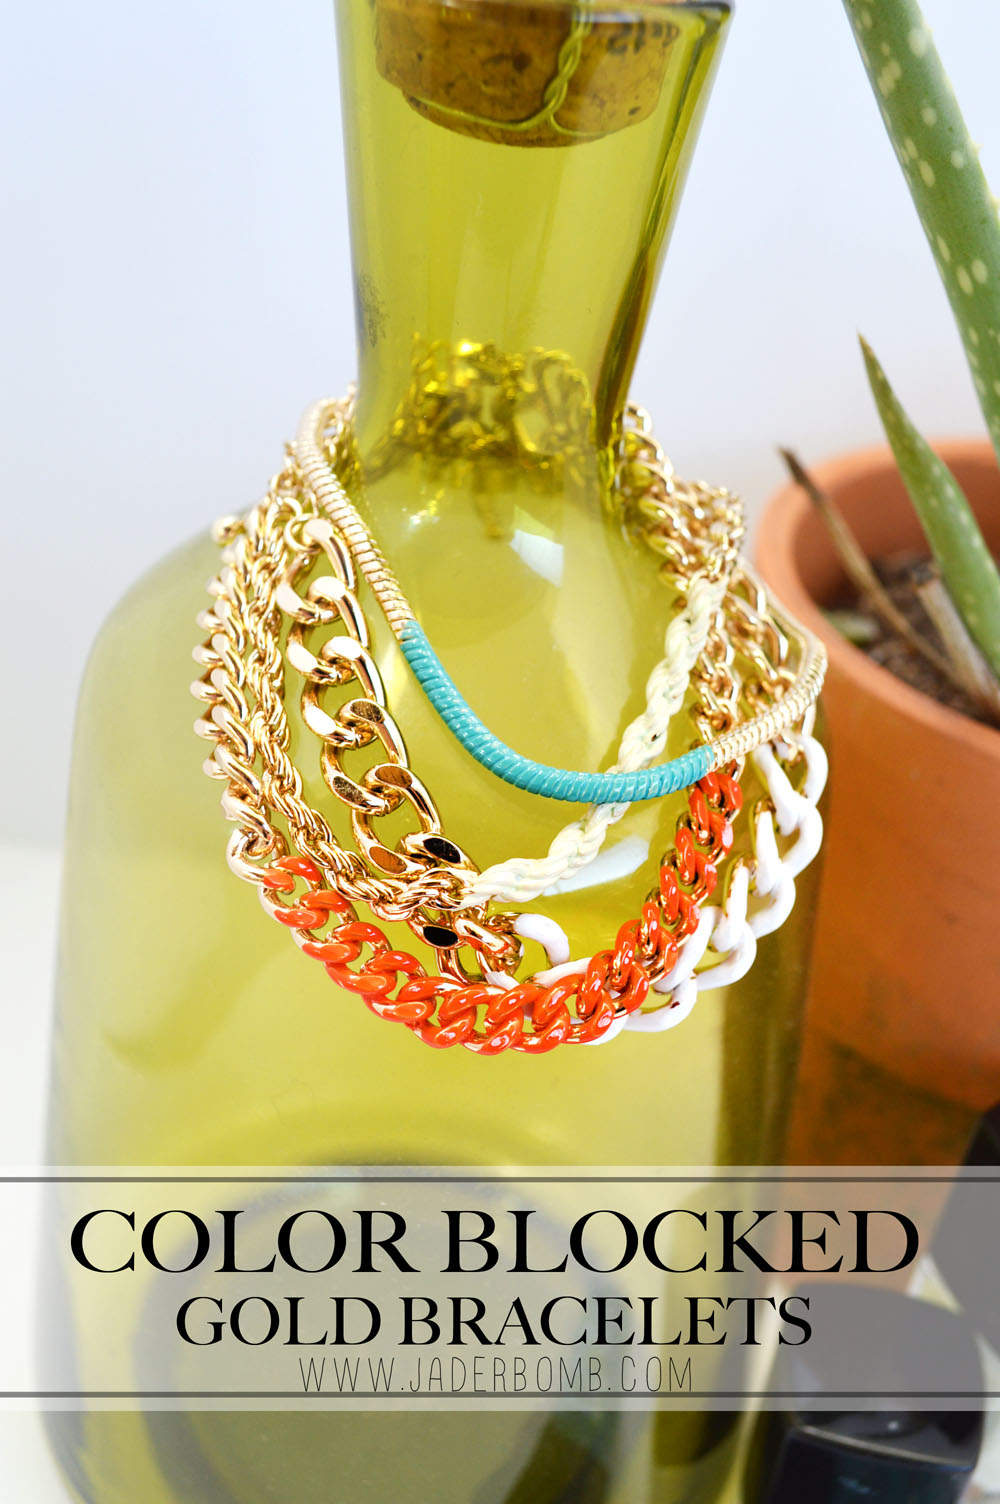 Color Blocked Gold Bracelets